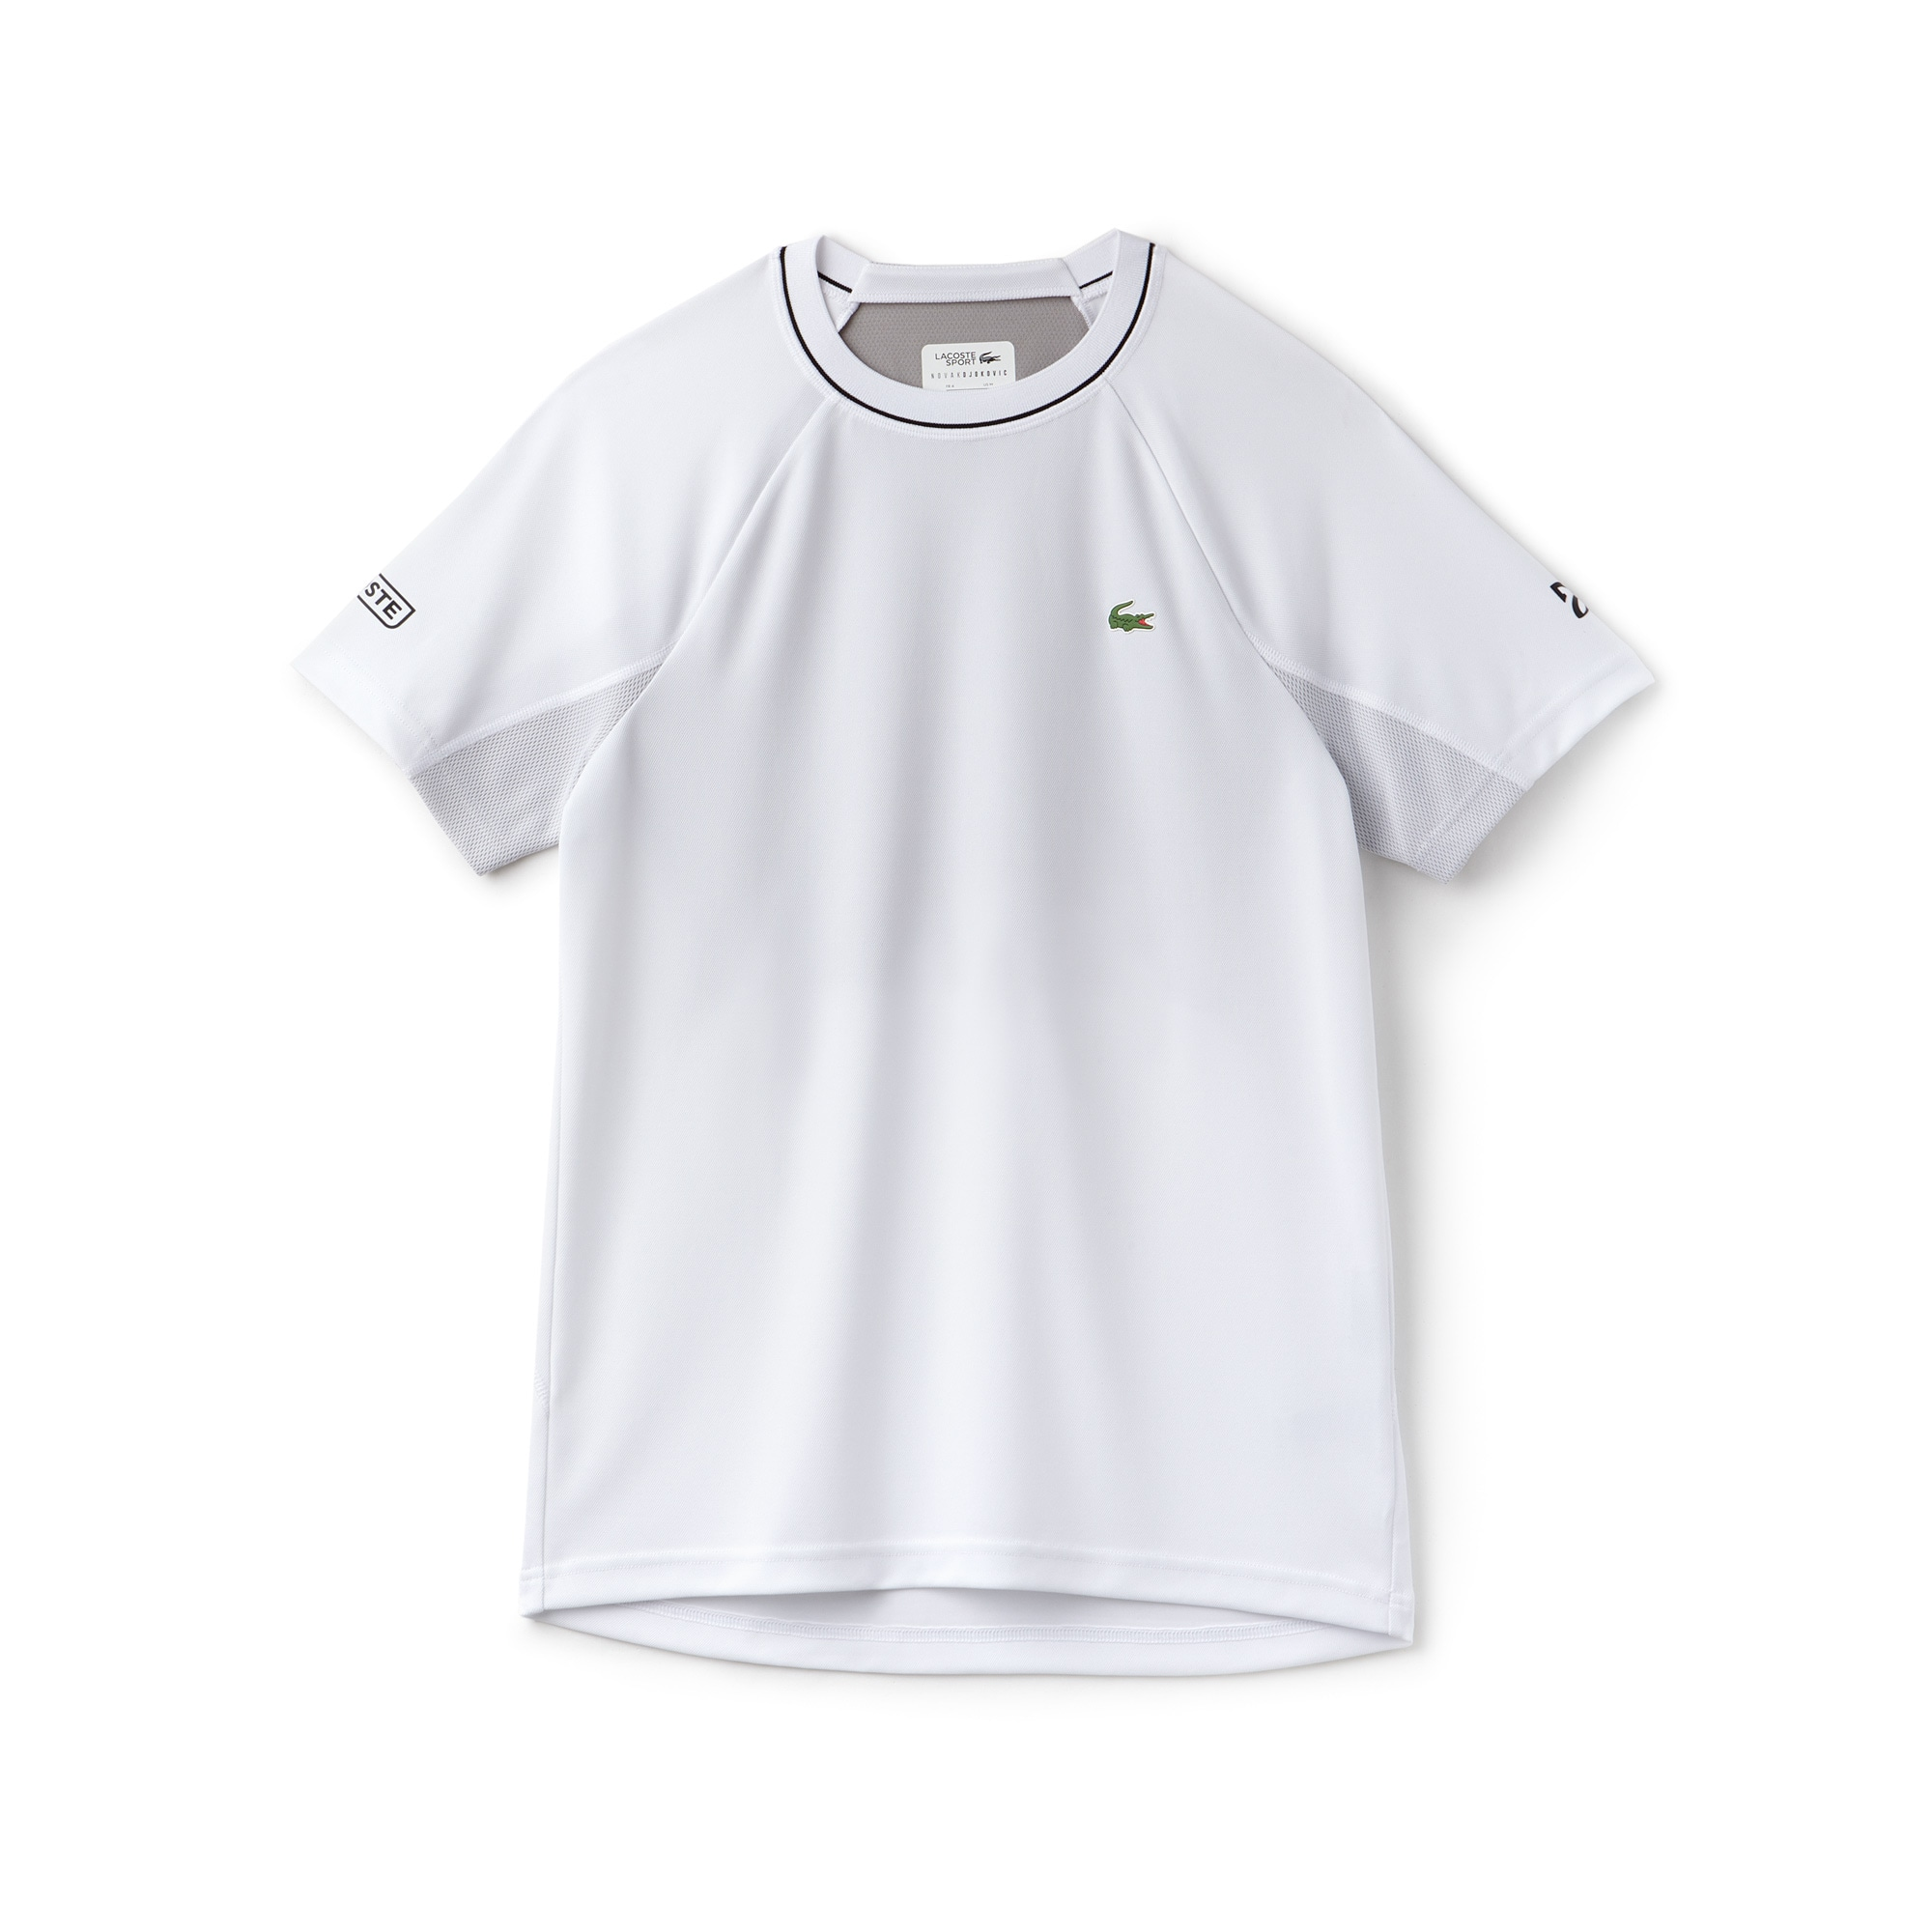 T-shirt col rond Lacoste SPORT COLLECTION NOVAK DJOKOVIC SUPPORT WITH STYLE en piqué technique et mesh